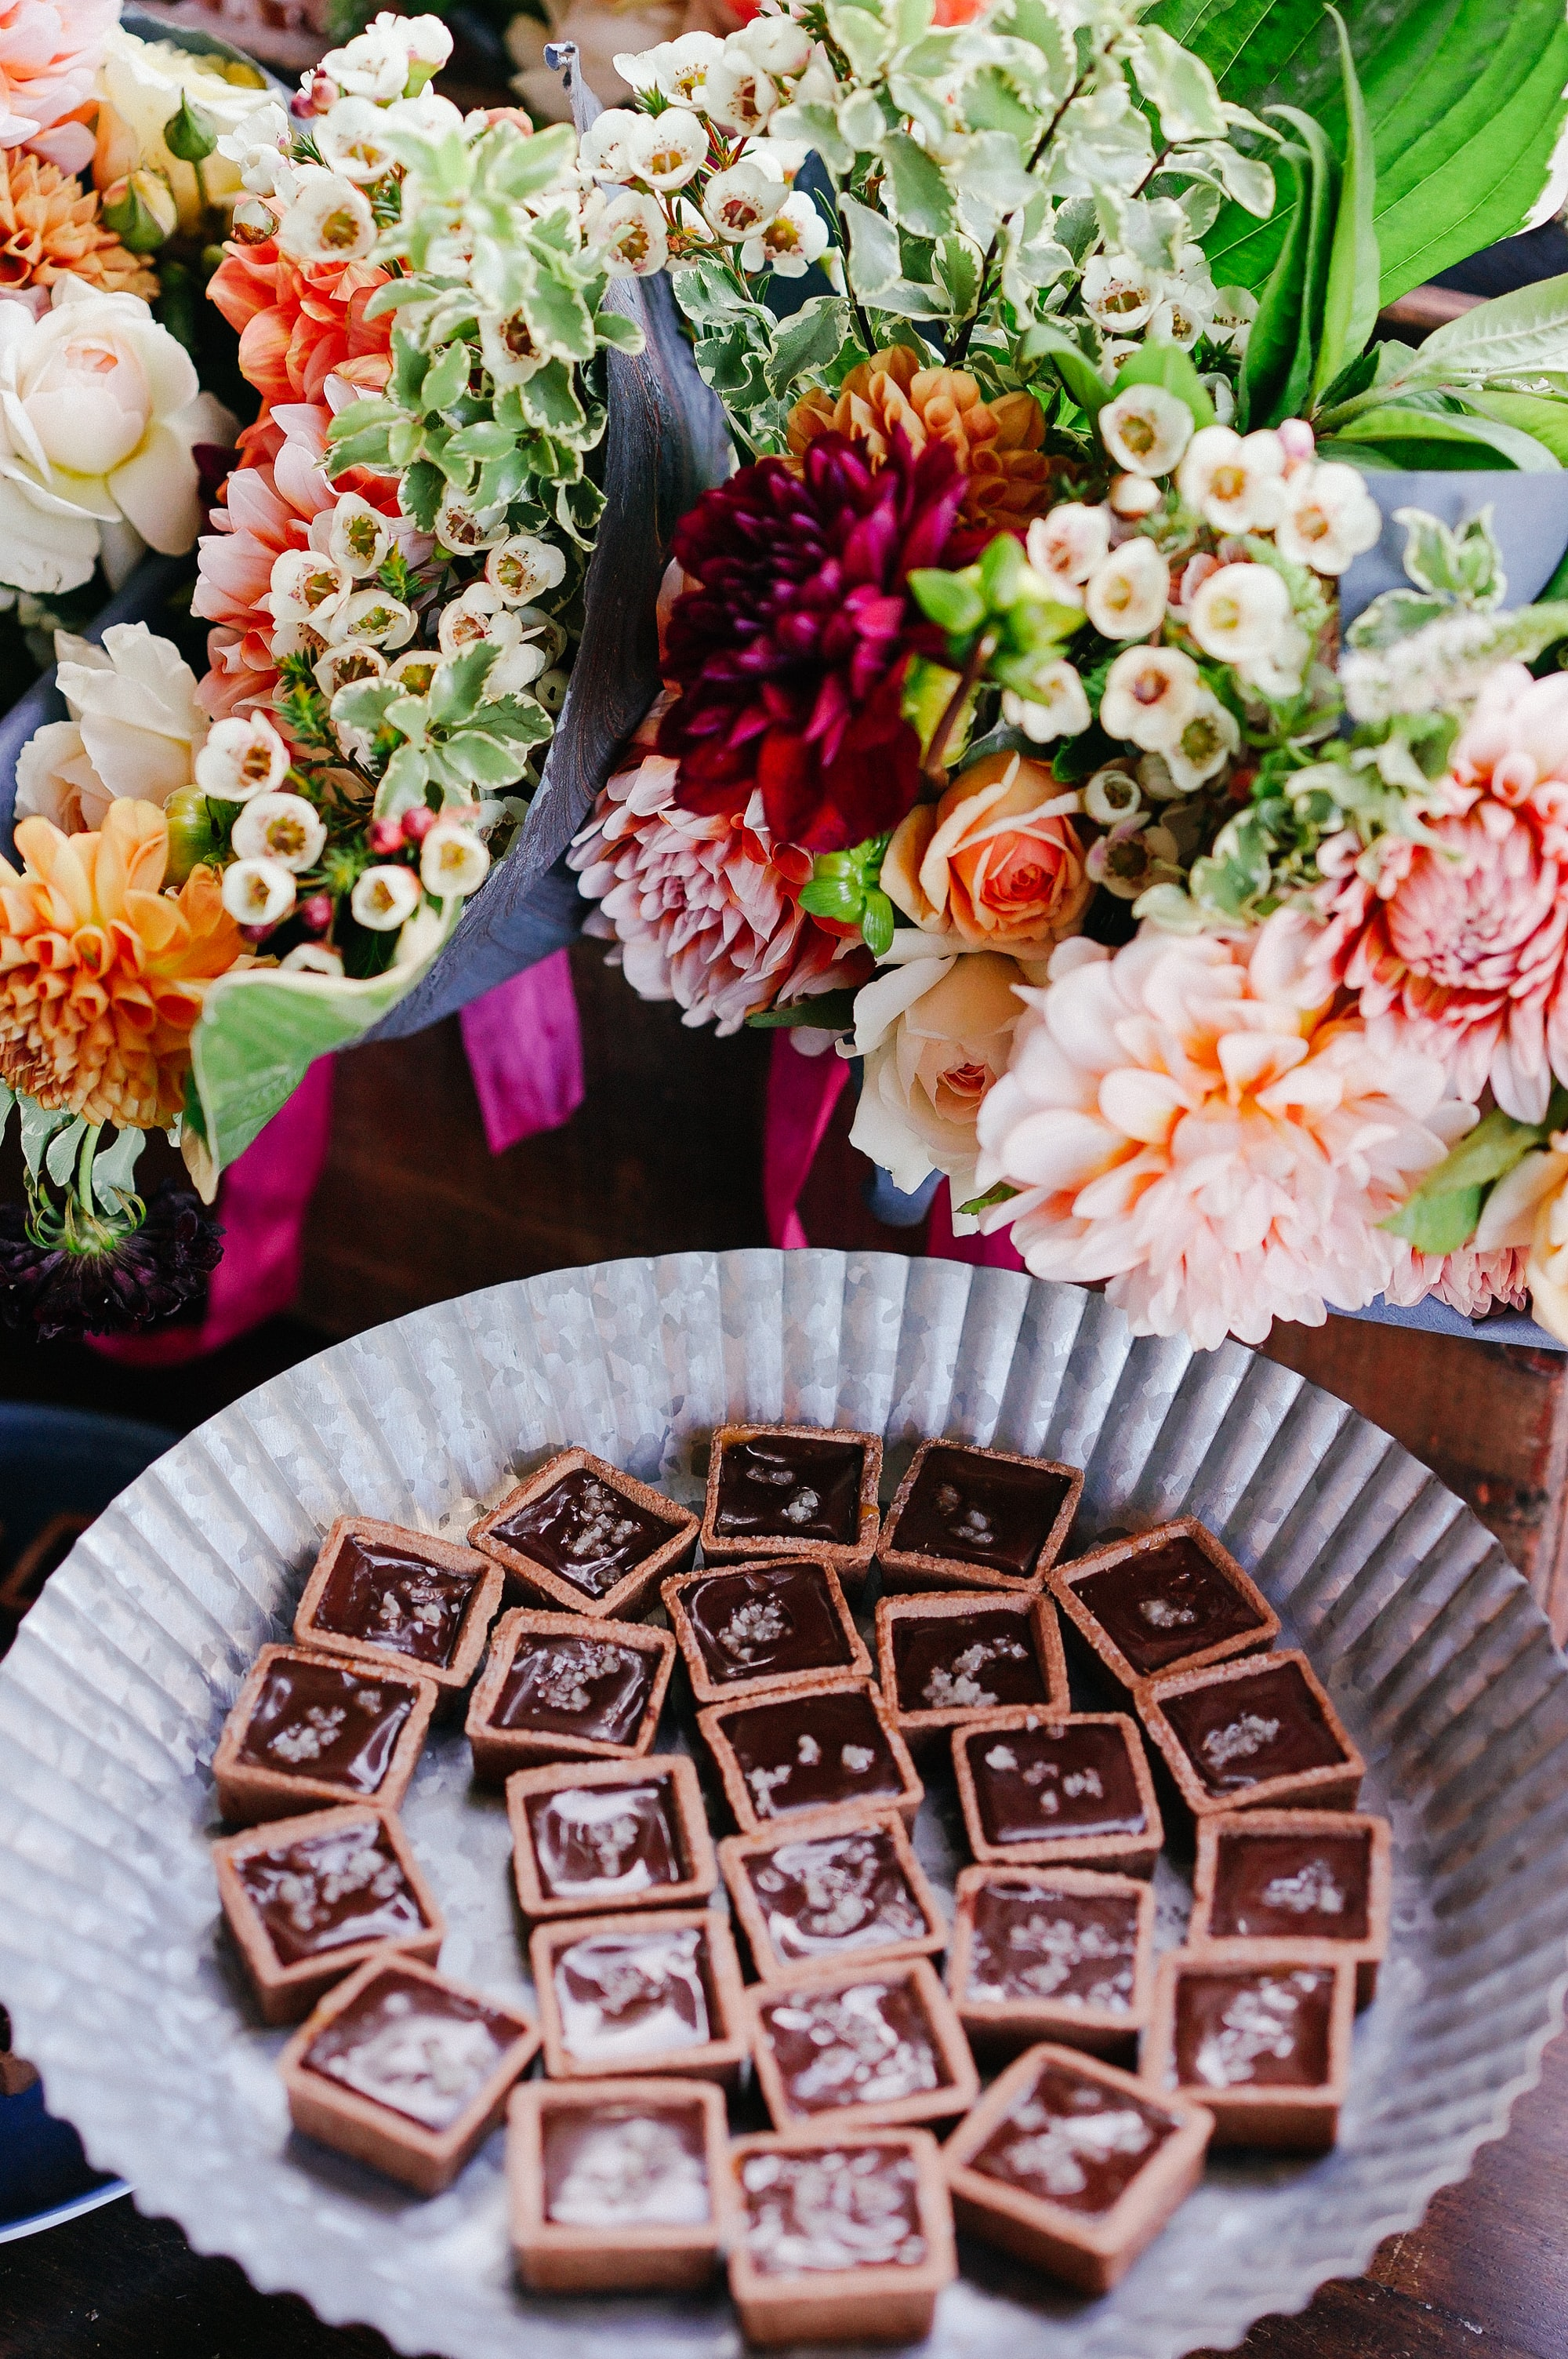 A paper plate with chocolate candy next to an arrangement of various flowers